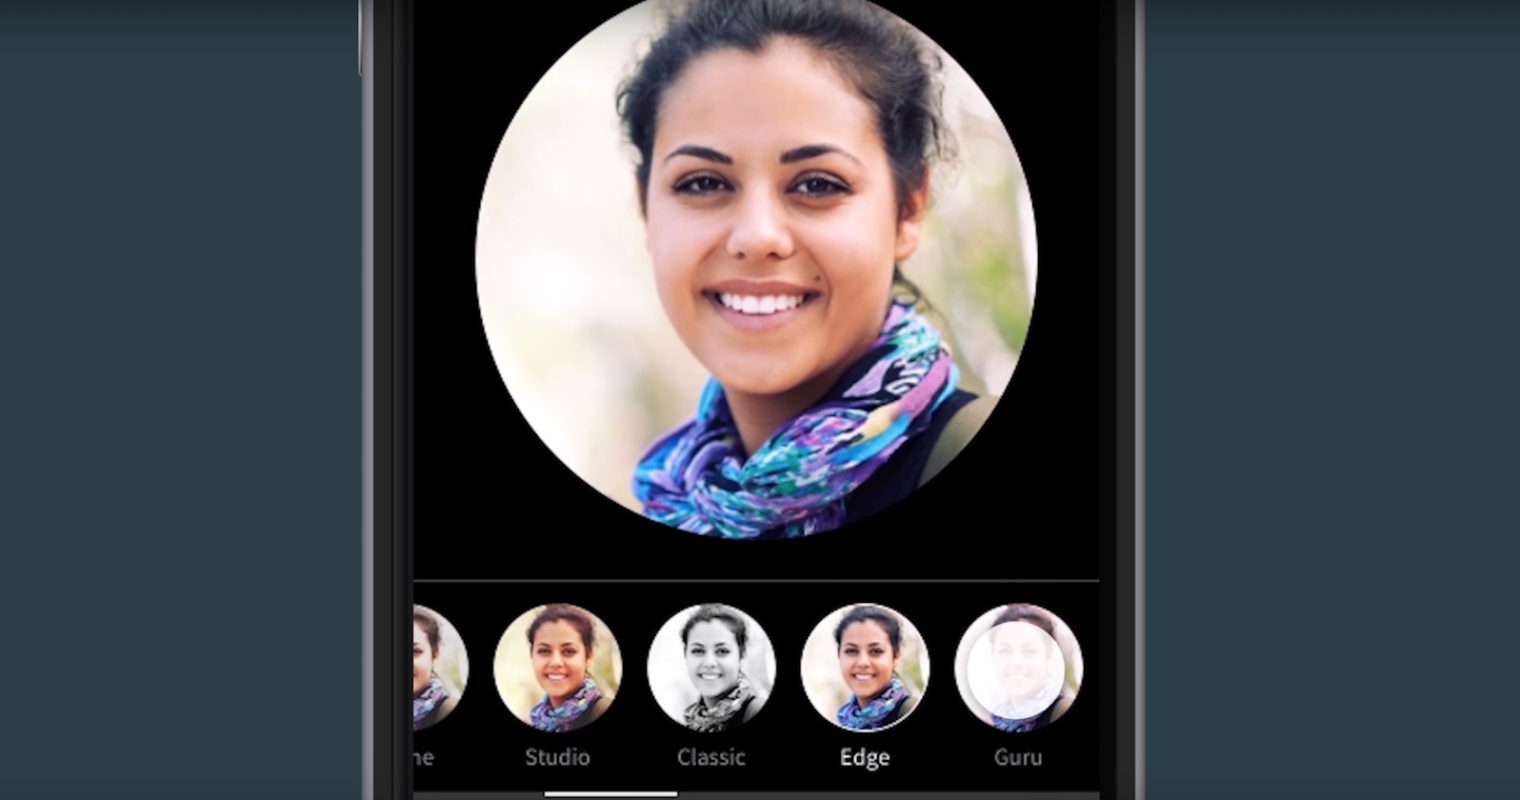 LinkedIn Adds 6 New Profile Picture Filters